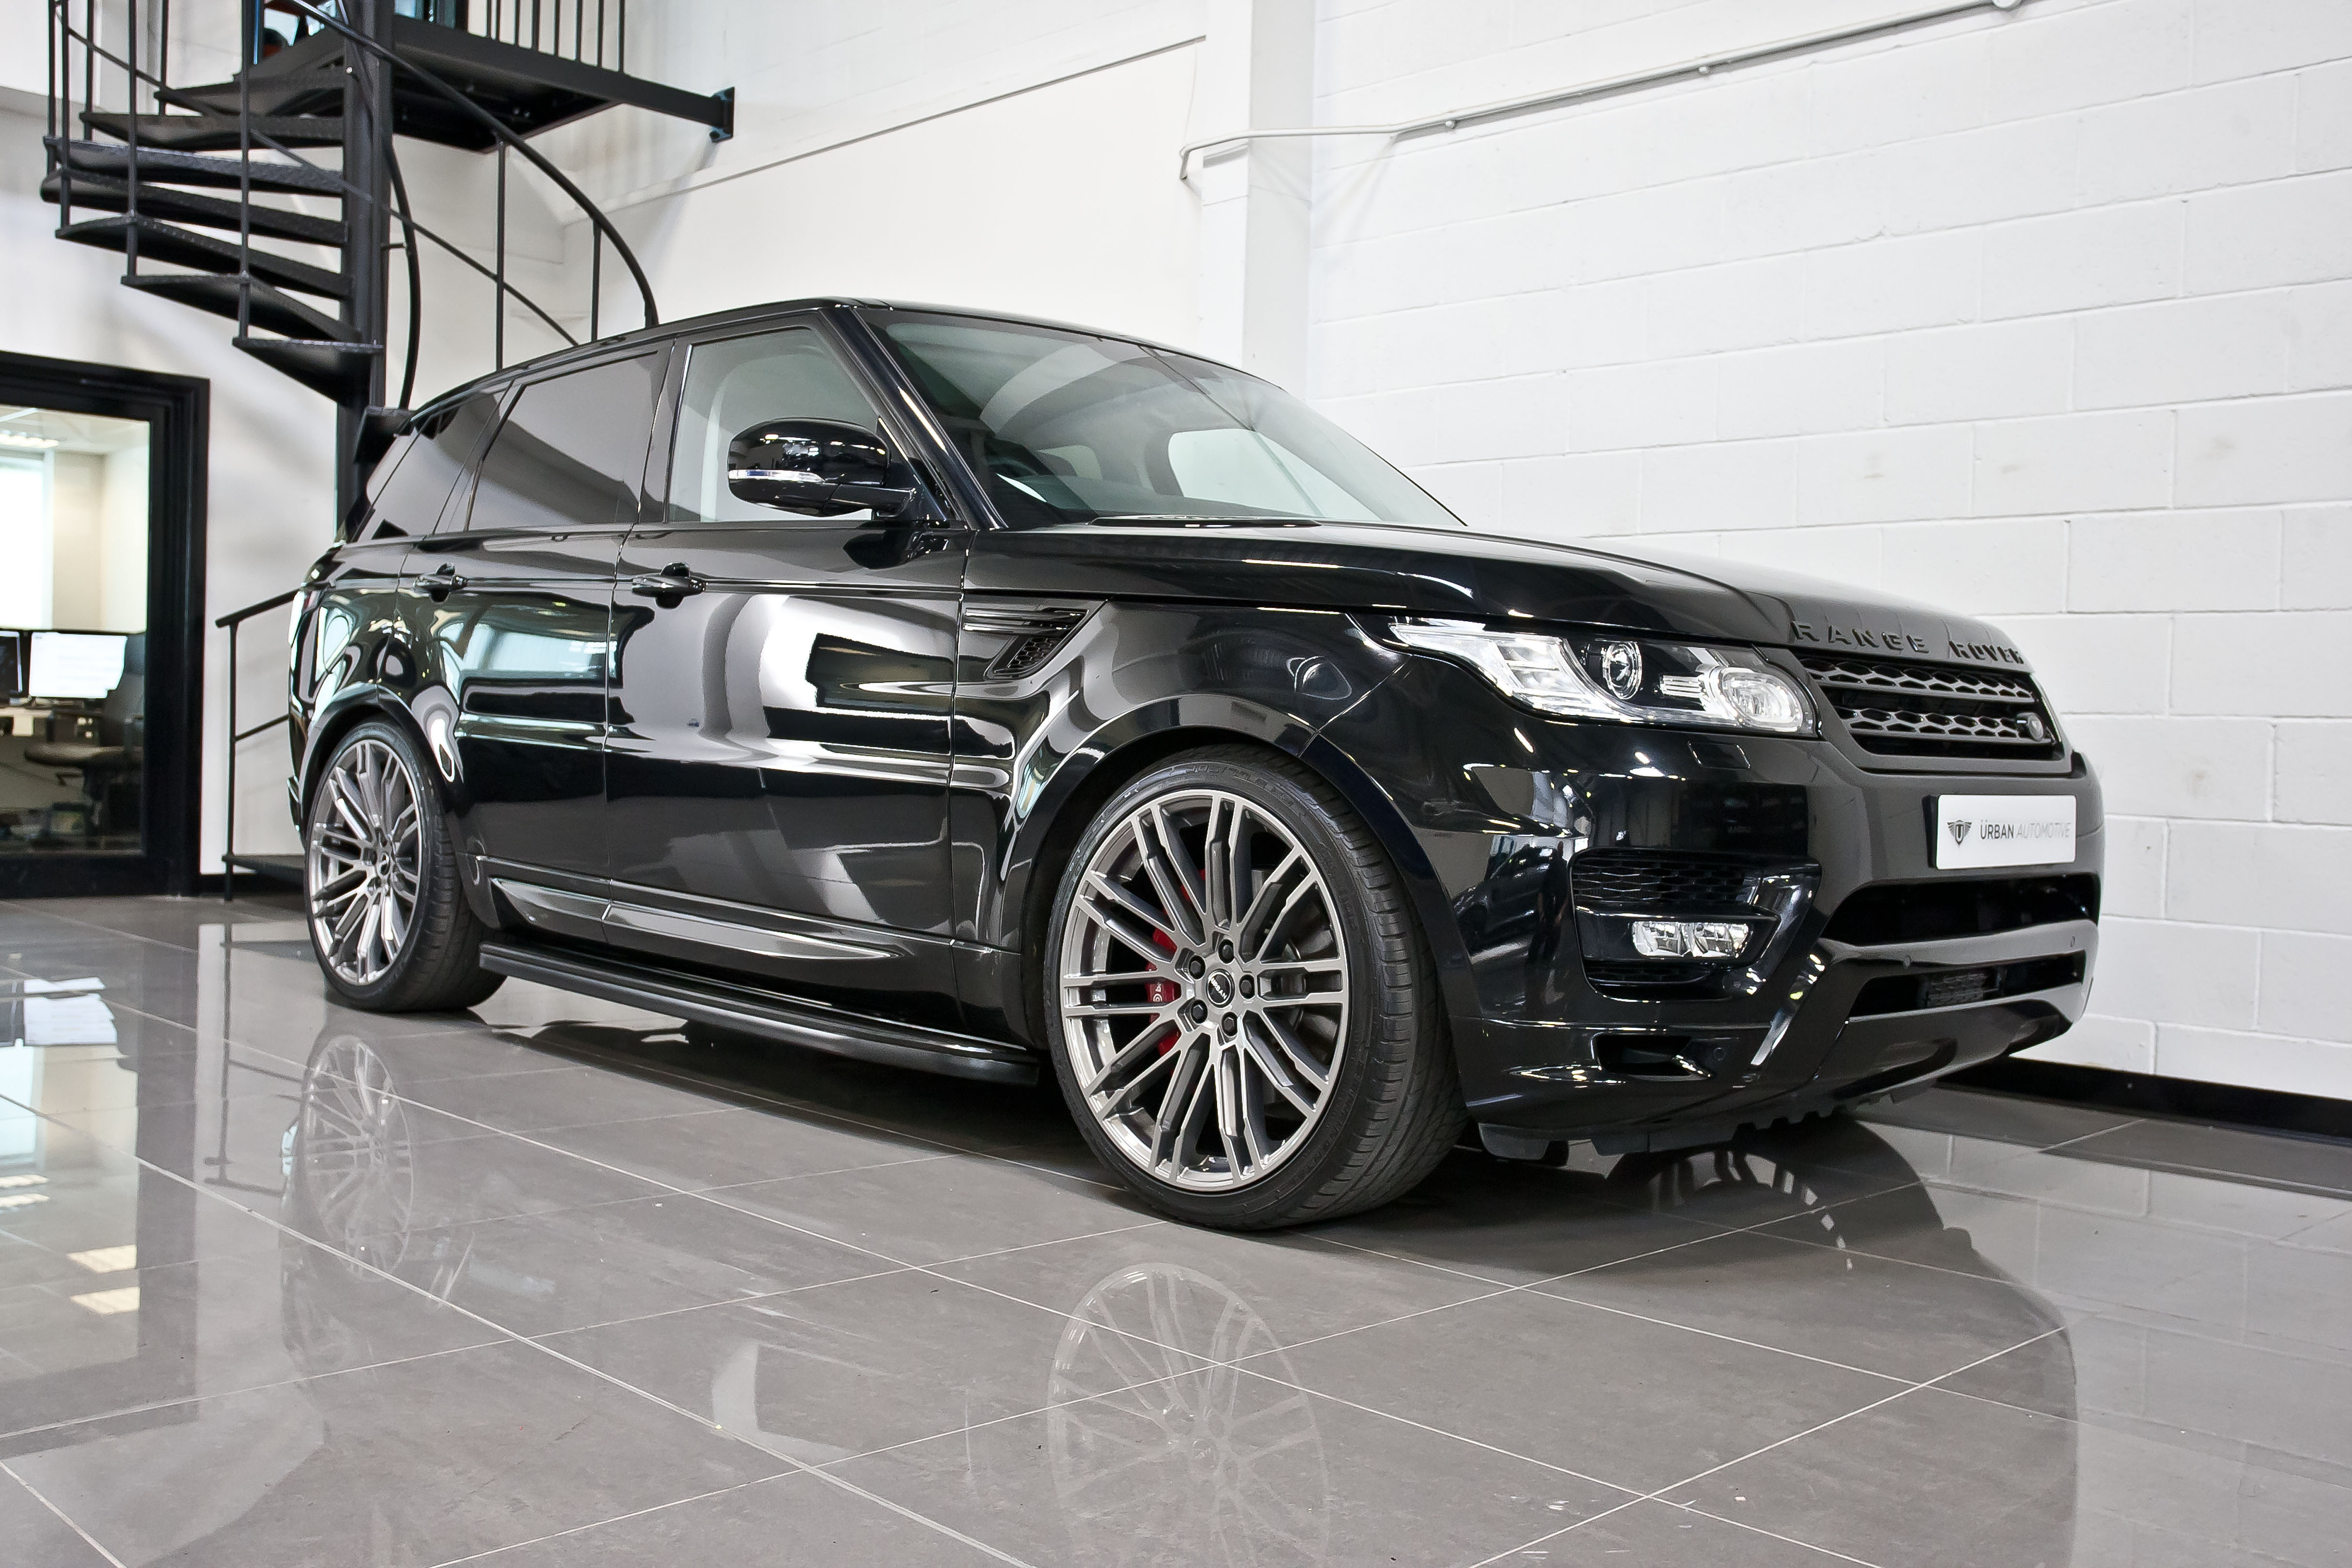 Sport Utility Vehicles >> URBAN AUTOMOTIVE - MODIFIER OF LUXURY SPORTS UTILITY VEHICLES | URBAN RANGE ROVER SPORT ...